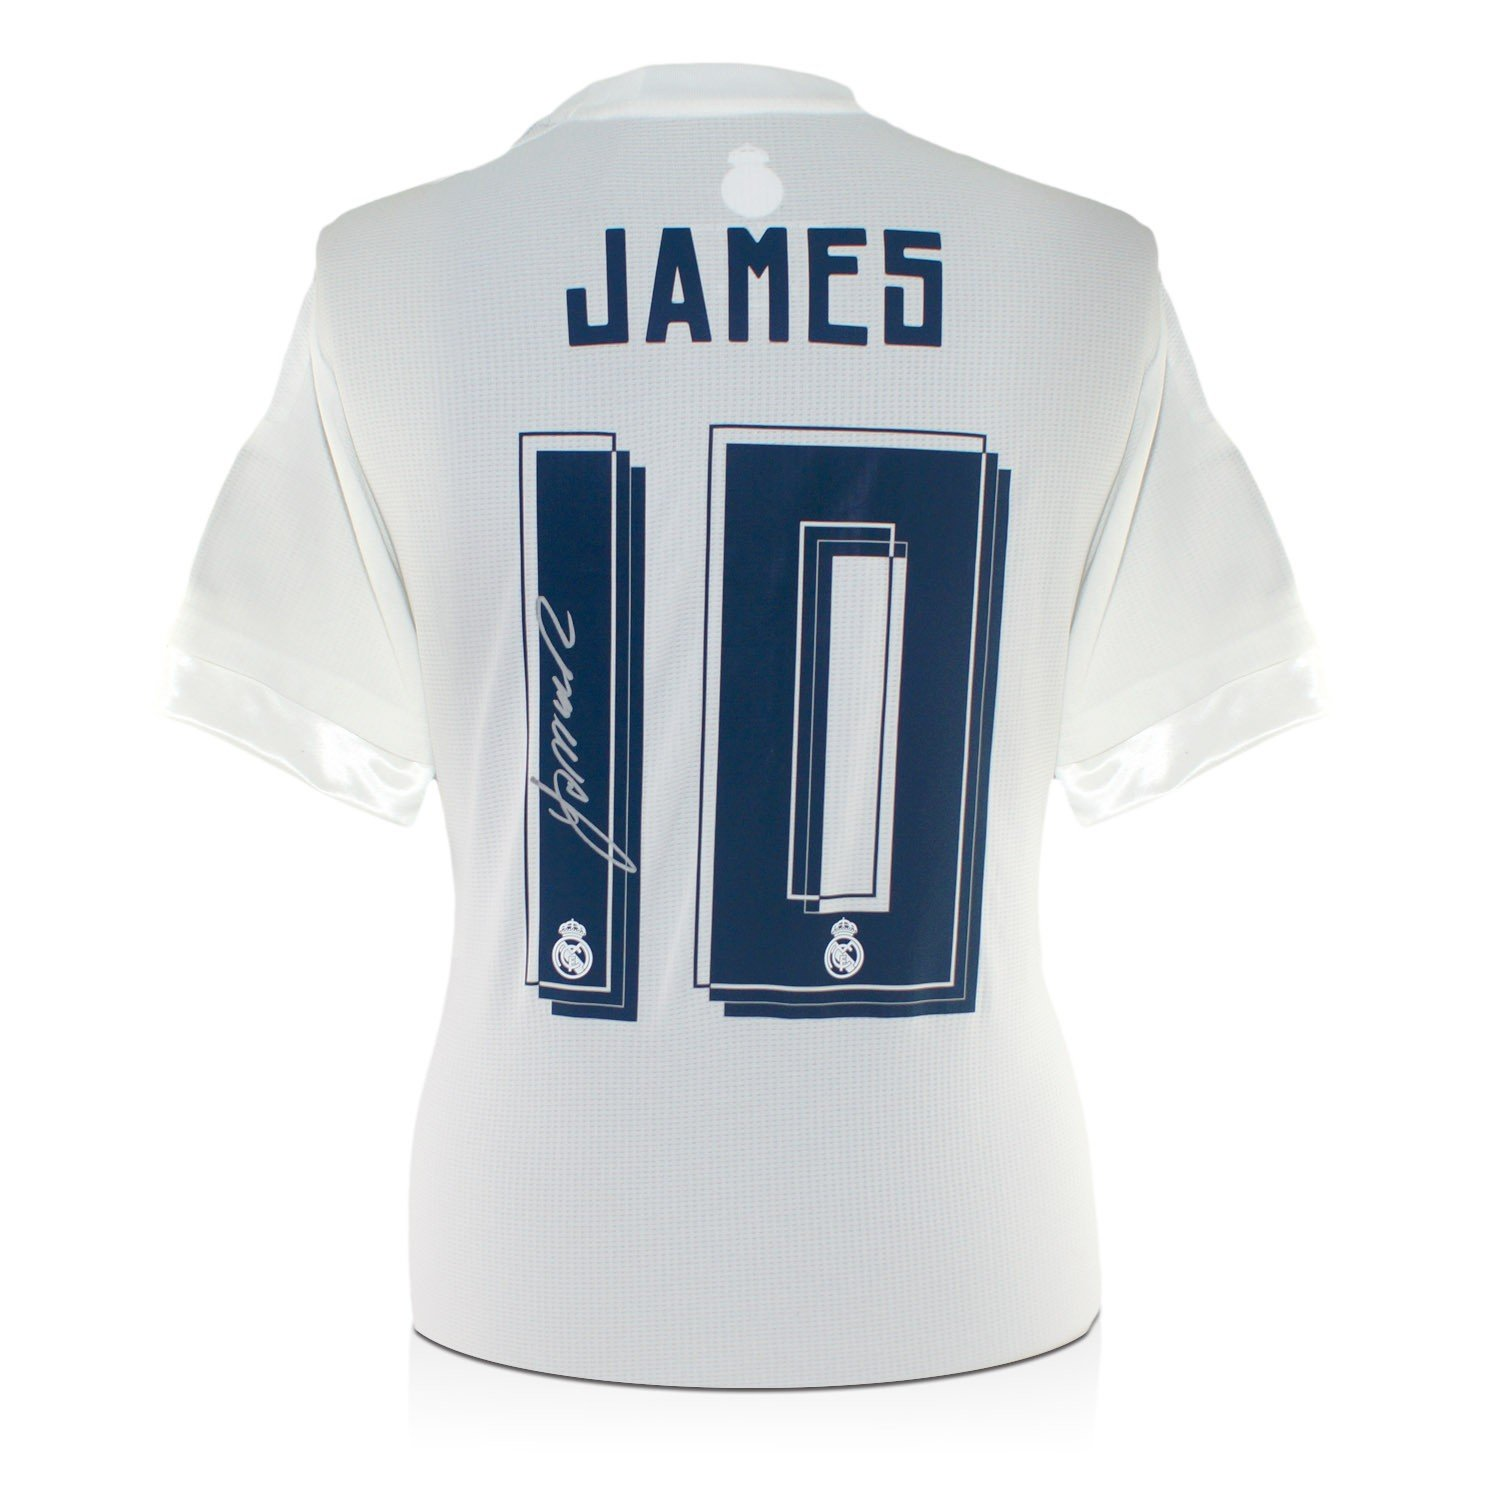 exclusivememorabilia.com James Rodríguez firmó 2015-16 Camiseta Real Madrid Fútbol: Amazon.es: Deportes y aire libre